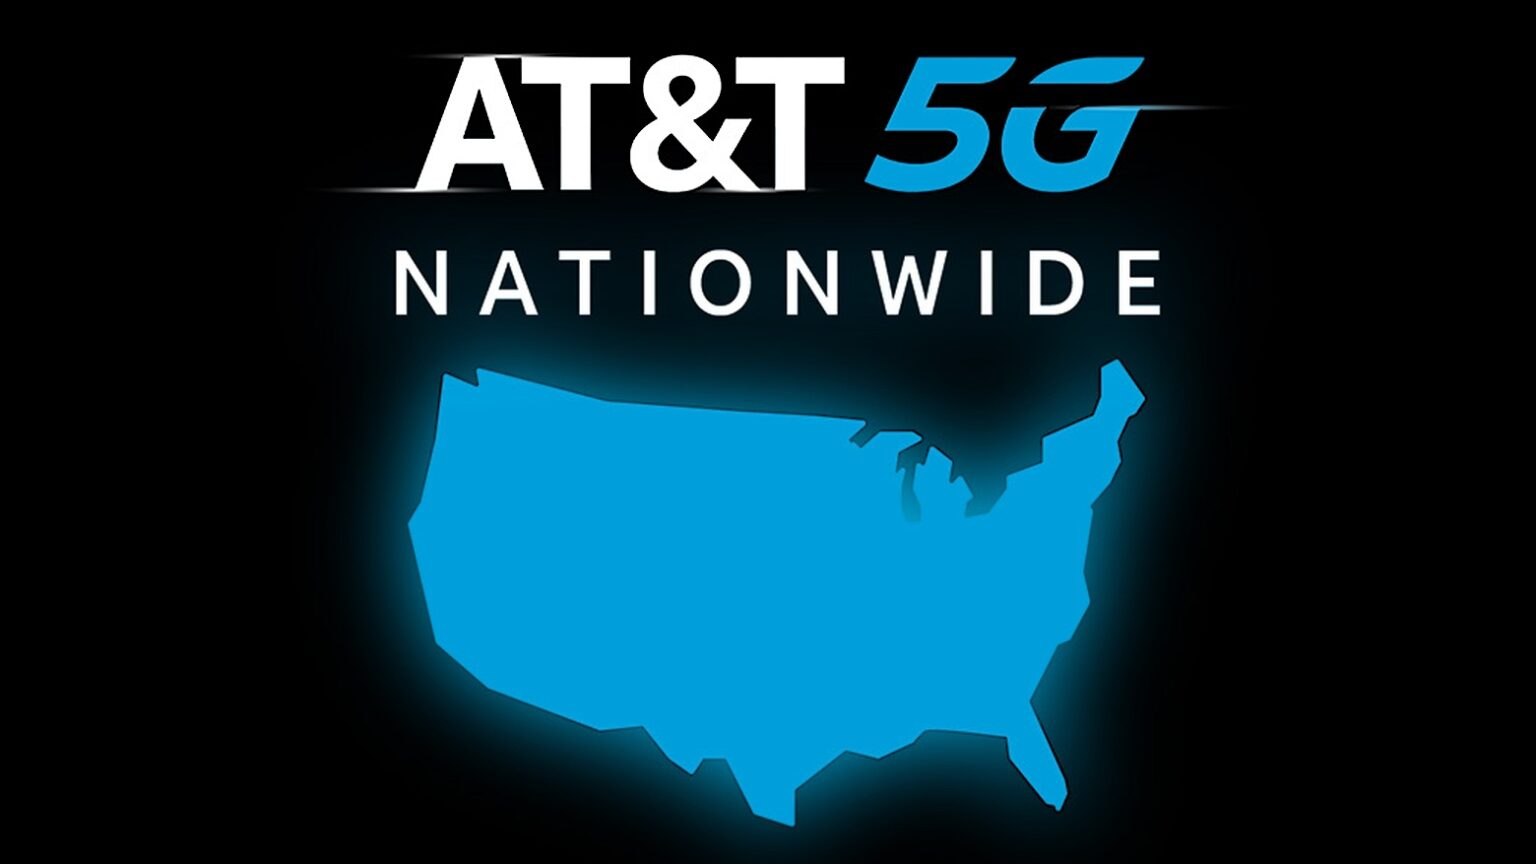 AT&T 5G expended by 40 markets on Thursday